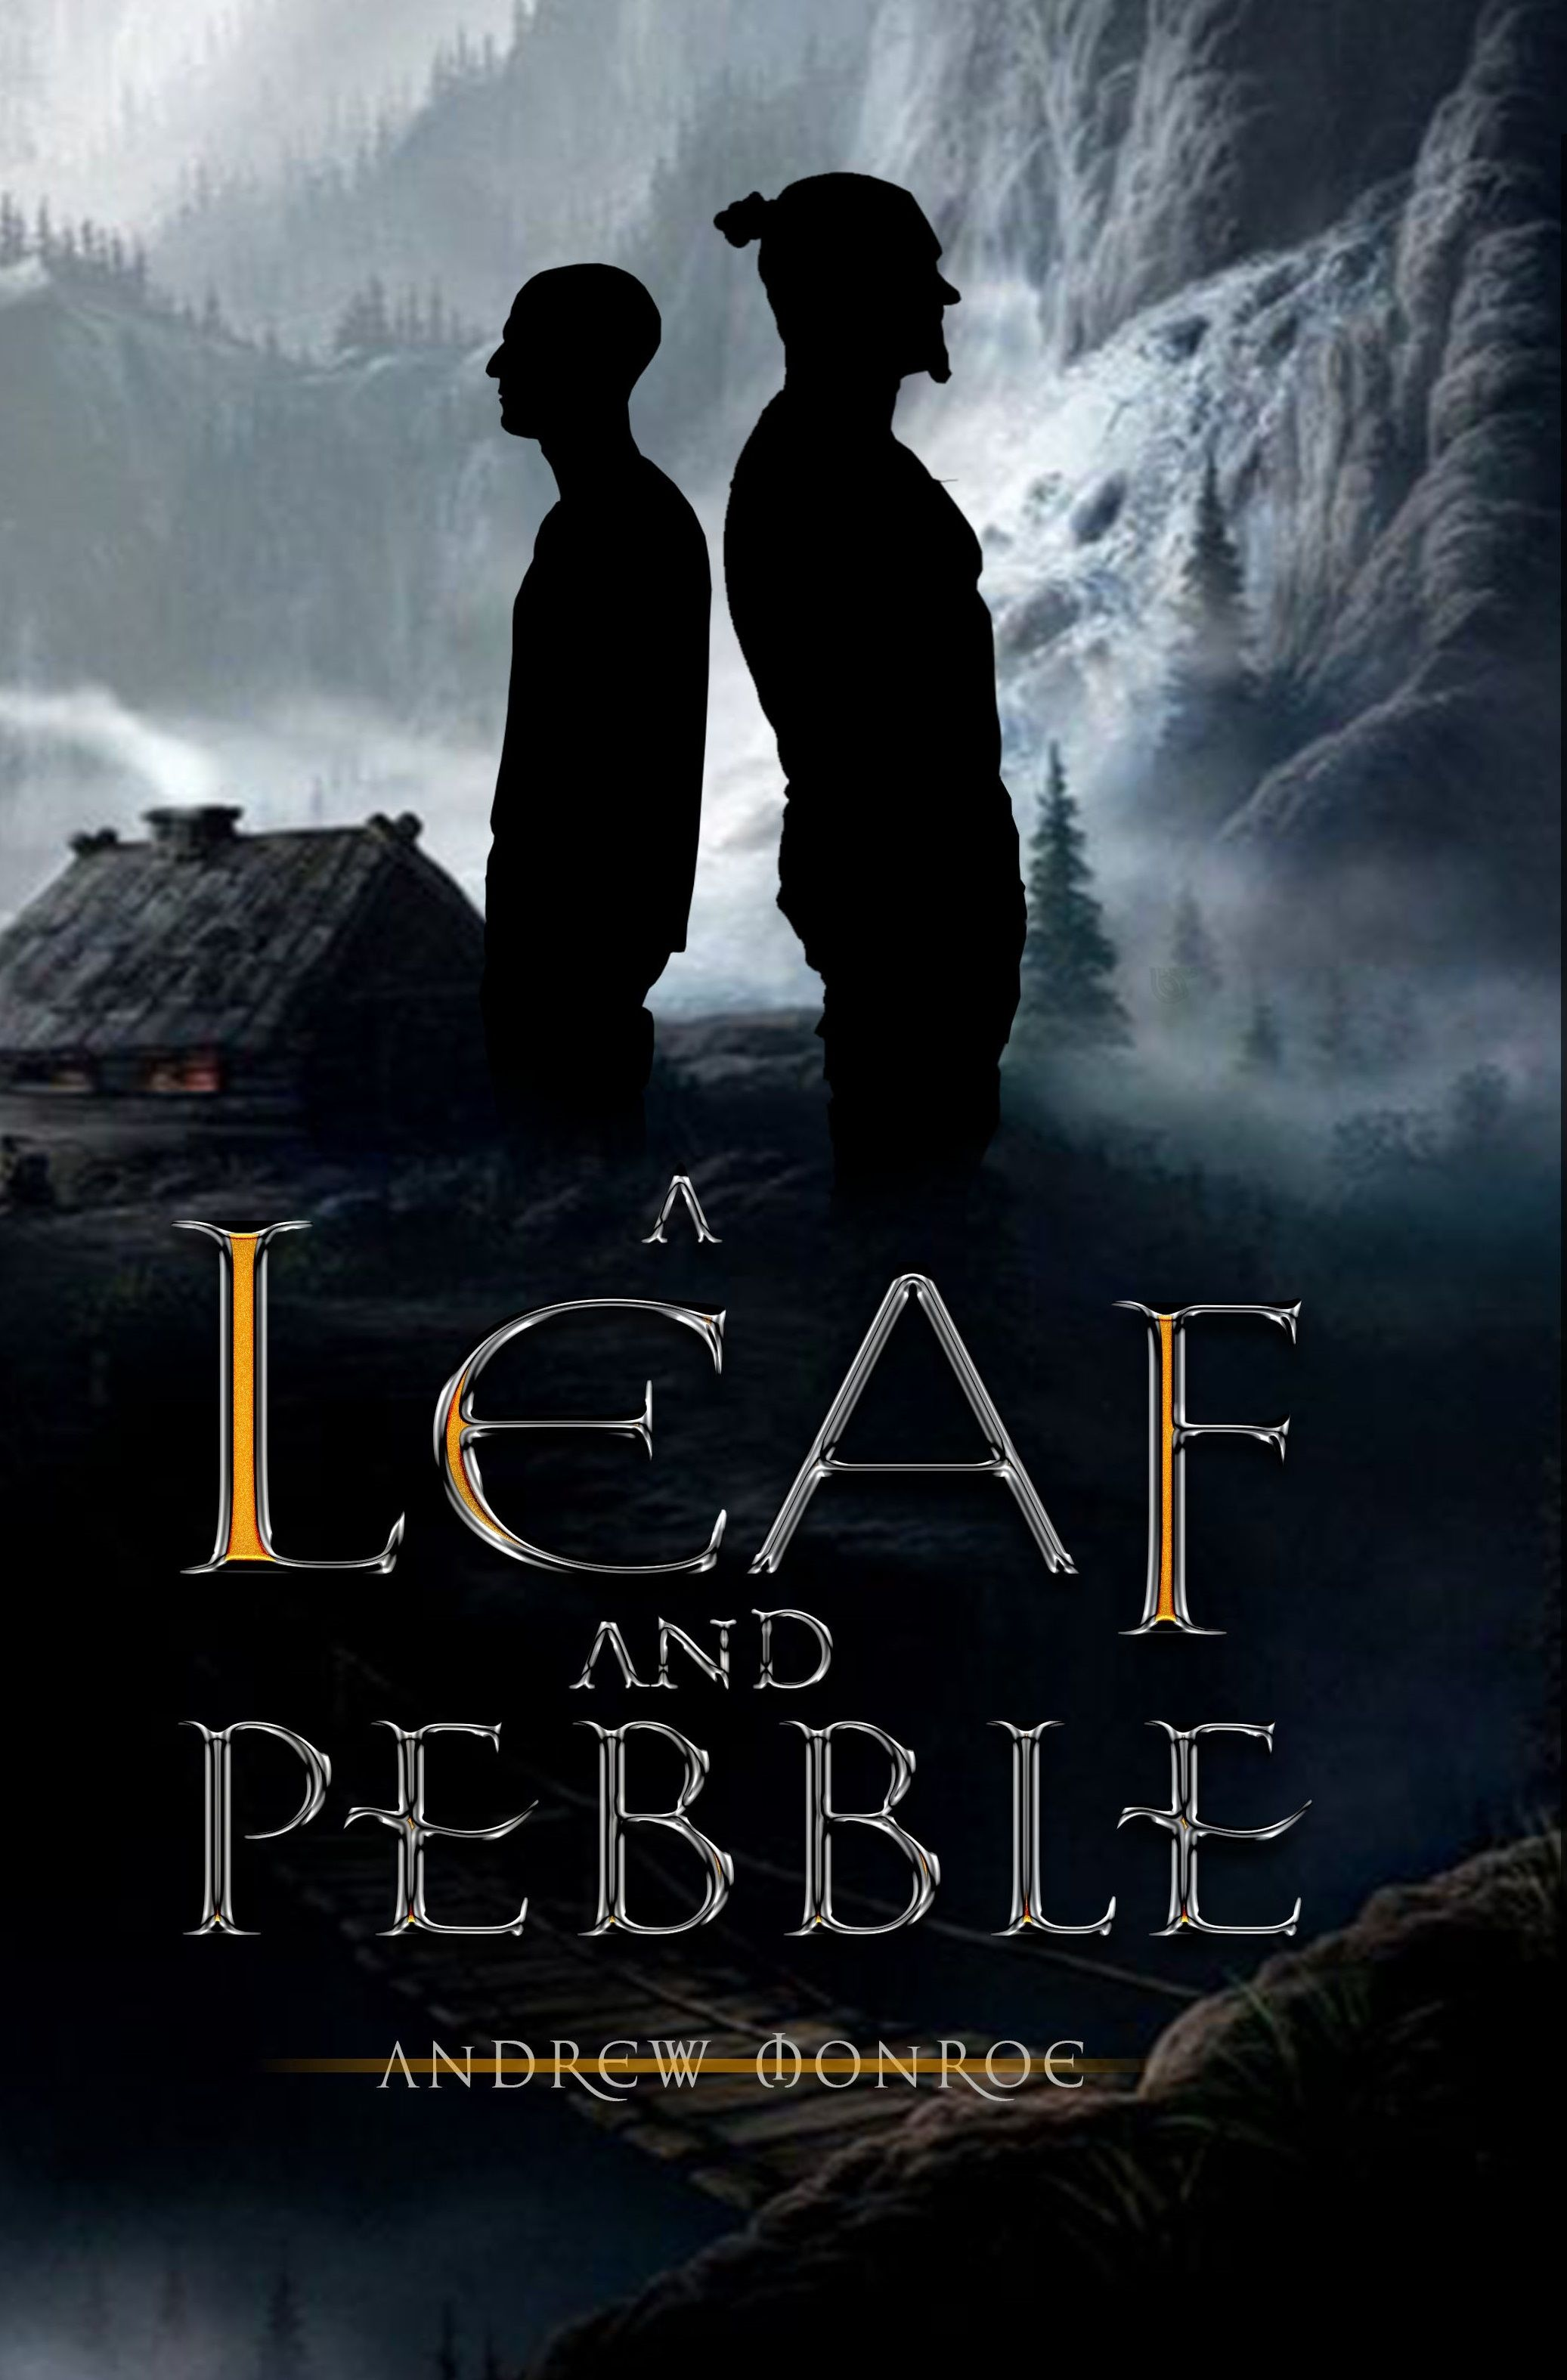 Amreading A Leaf And Pebble The Learner Trilogy Book 1 By